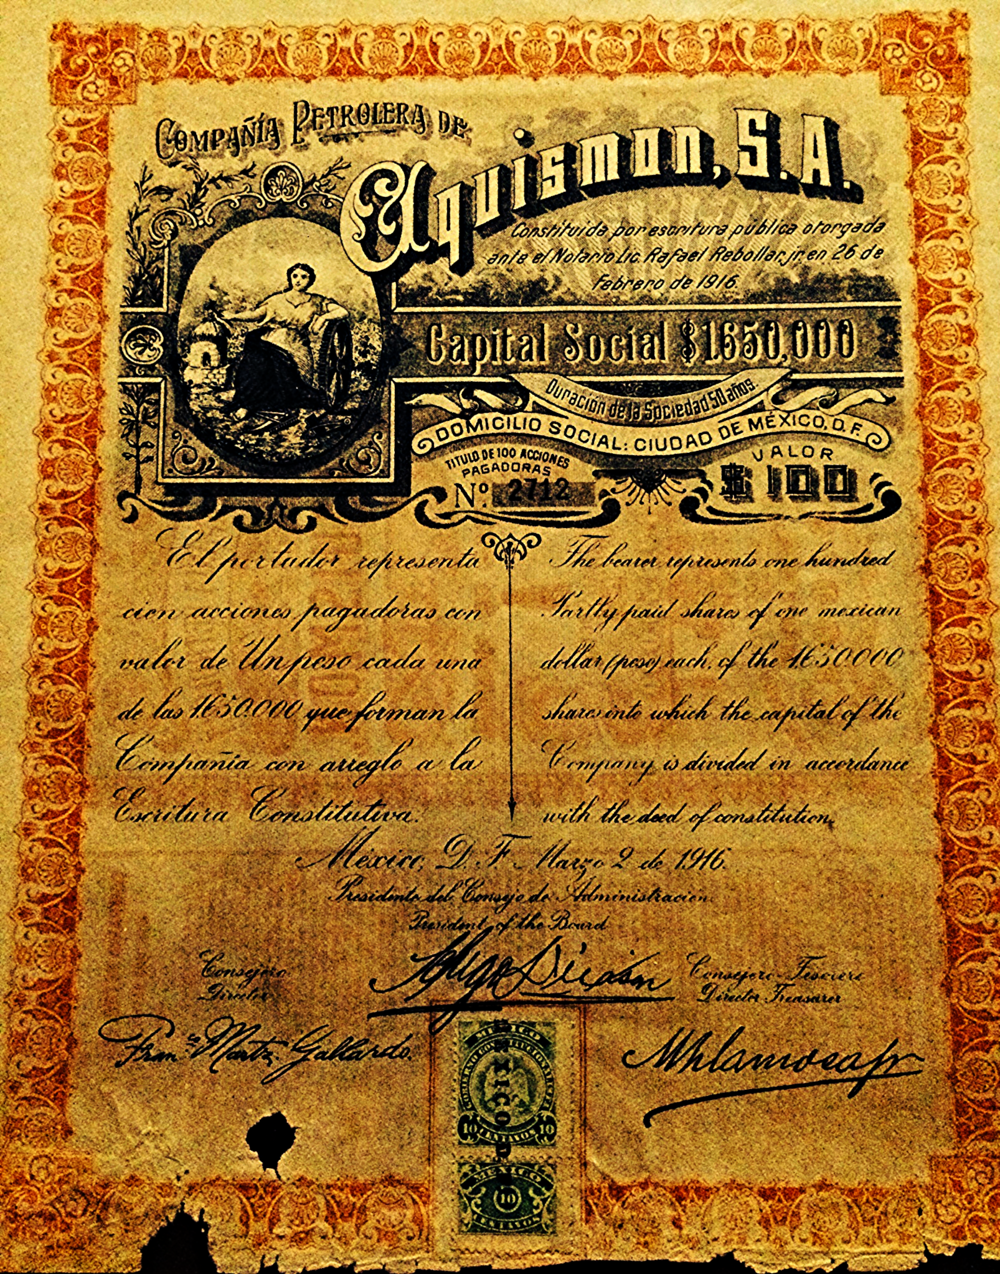 100 shares of Aquismon Petroleum Corporation, issued on May 2 1916.